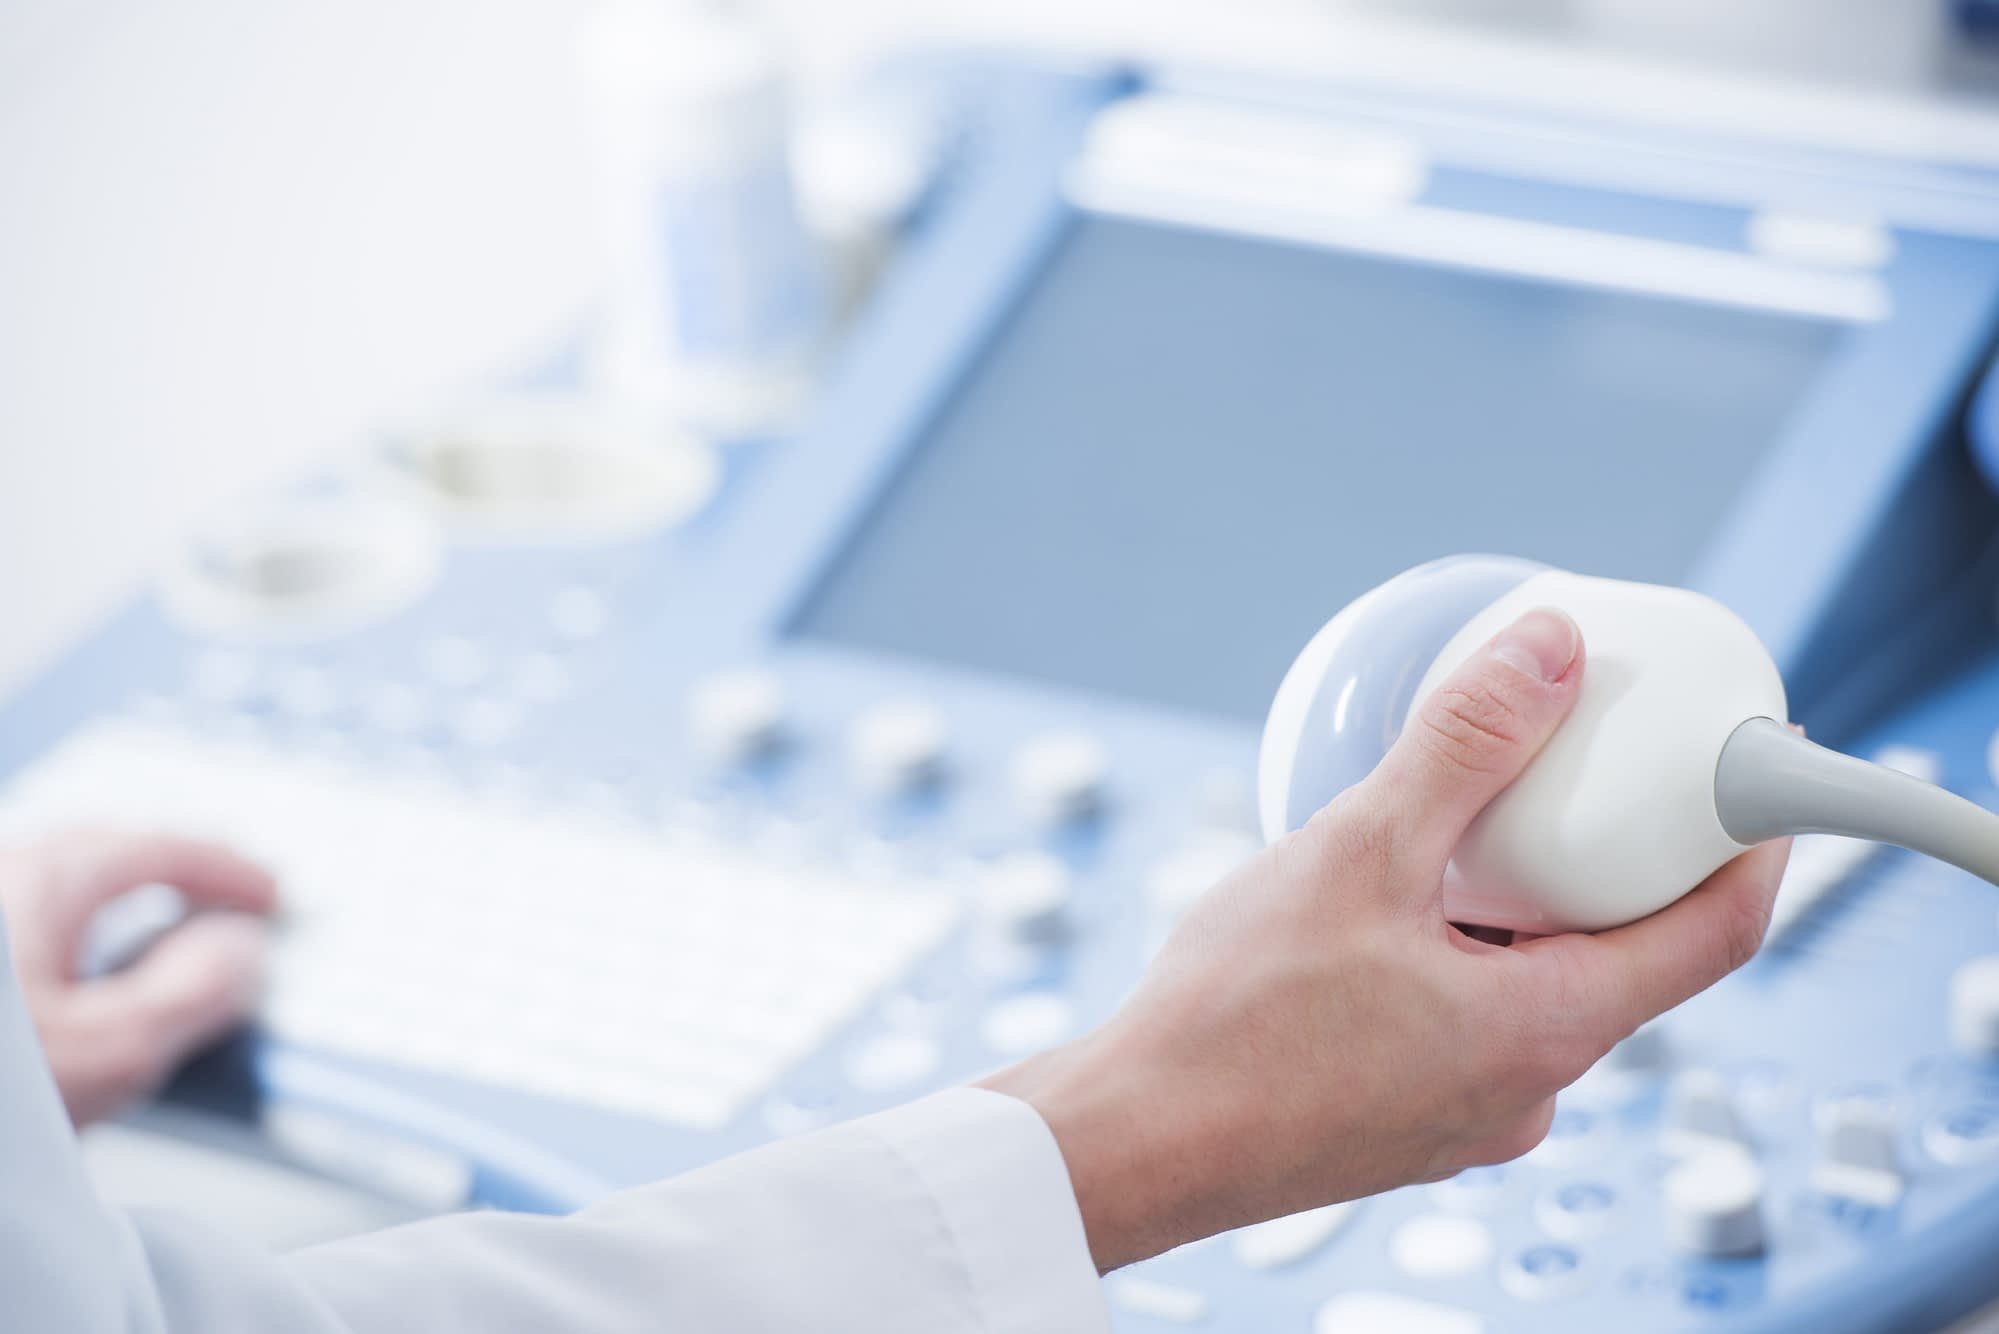 young woman doctor's hands close up preparing for an ultrasound device scan.